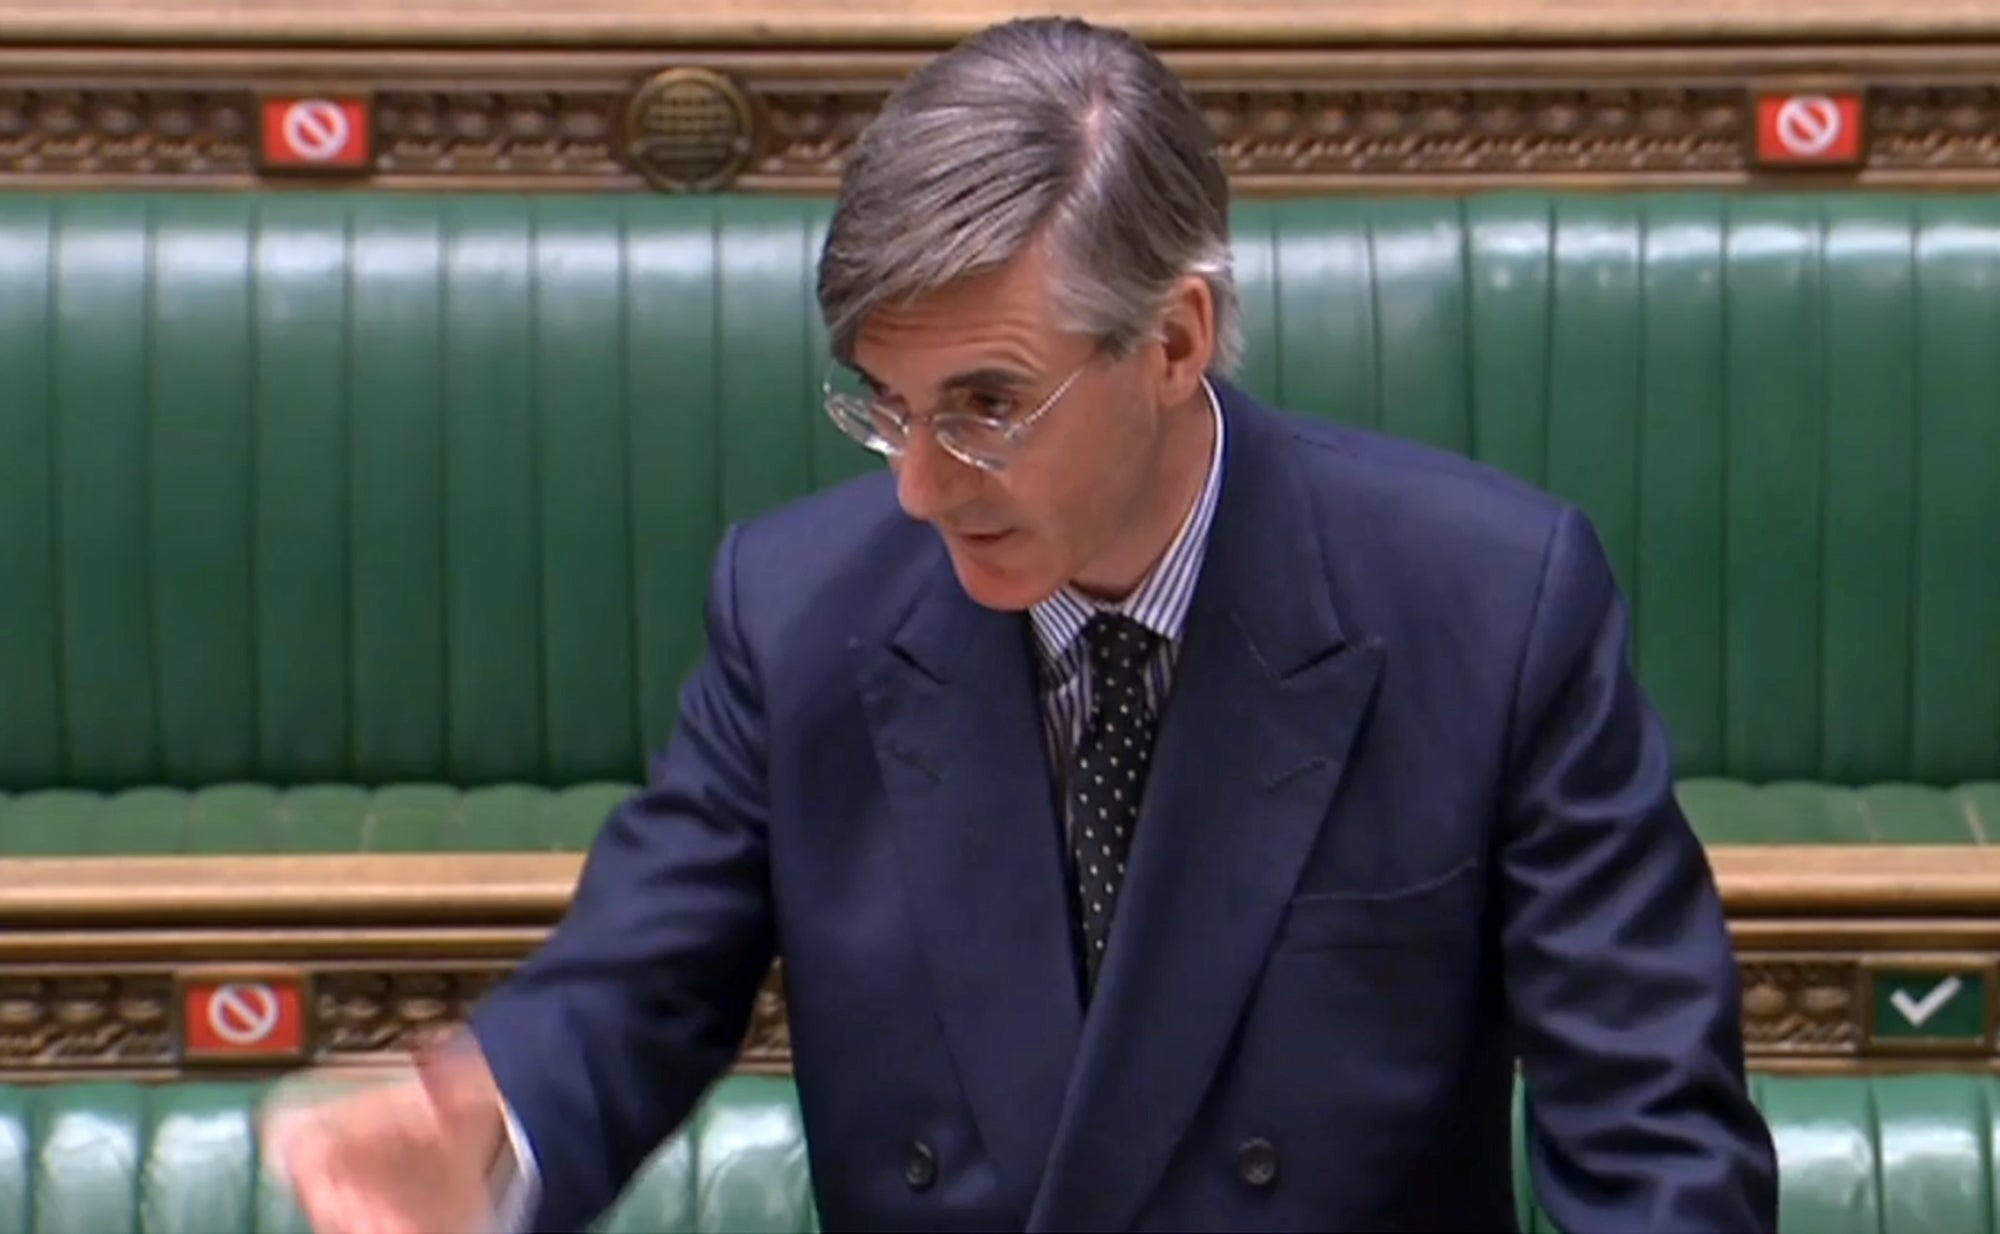 'Democracy for the elite': Rees-Mogg faces backlash for attempt to end virtual voting MPs